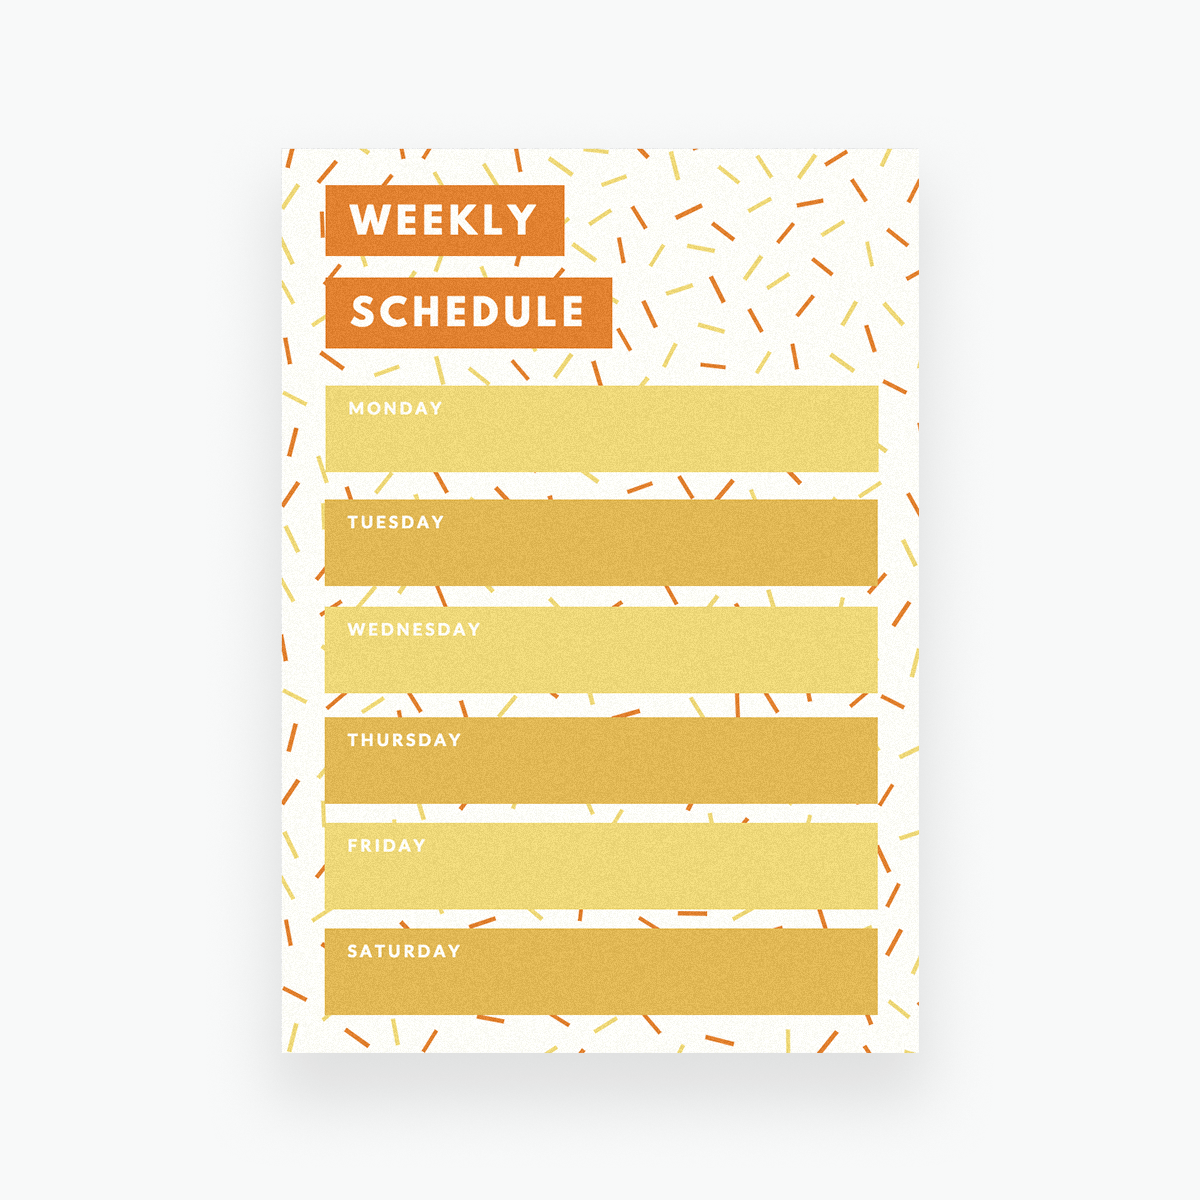 free online weekly schedule maker  design a custom weekly